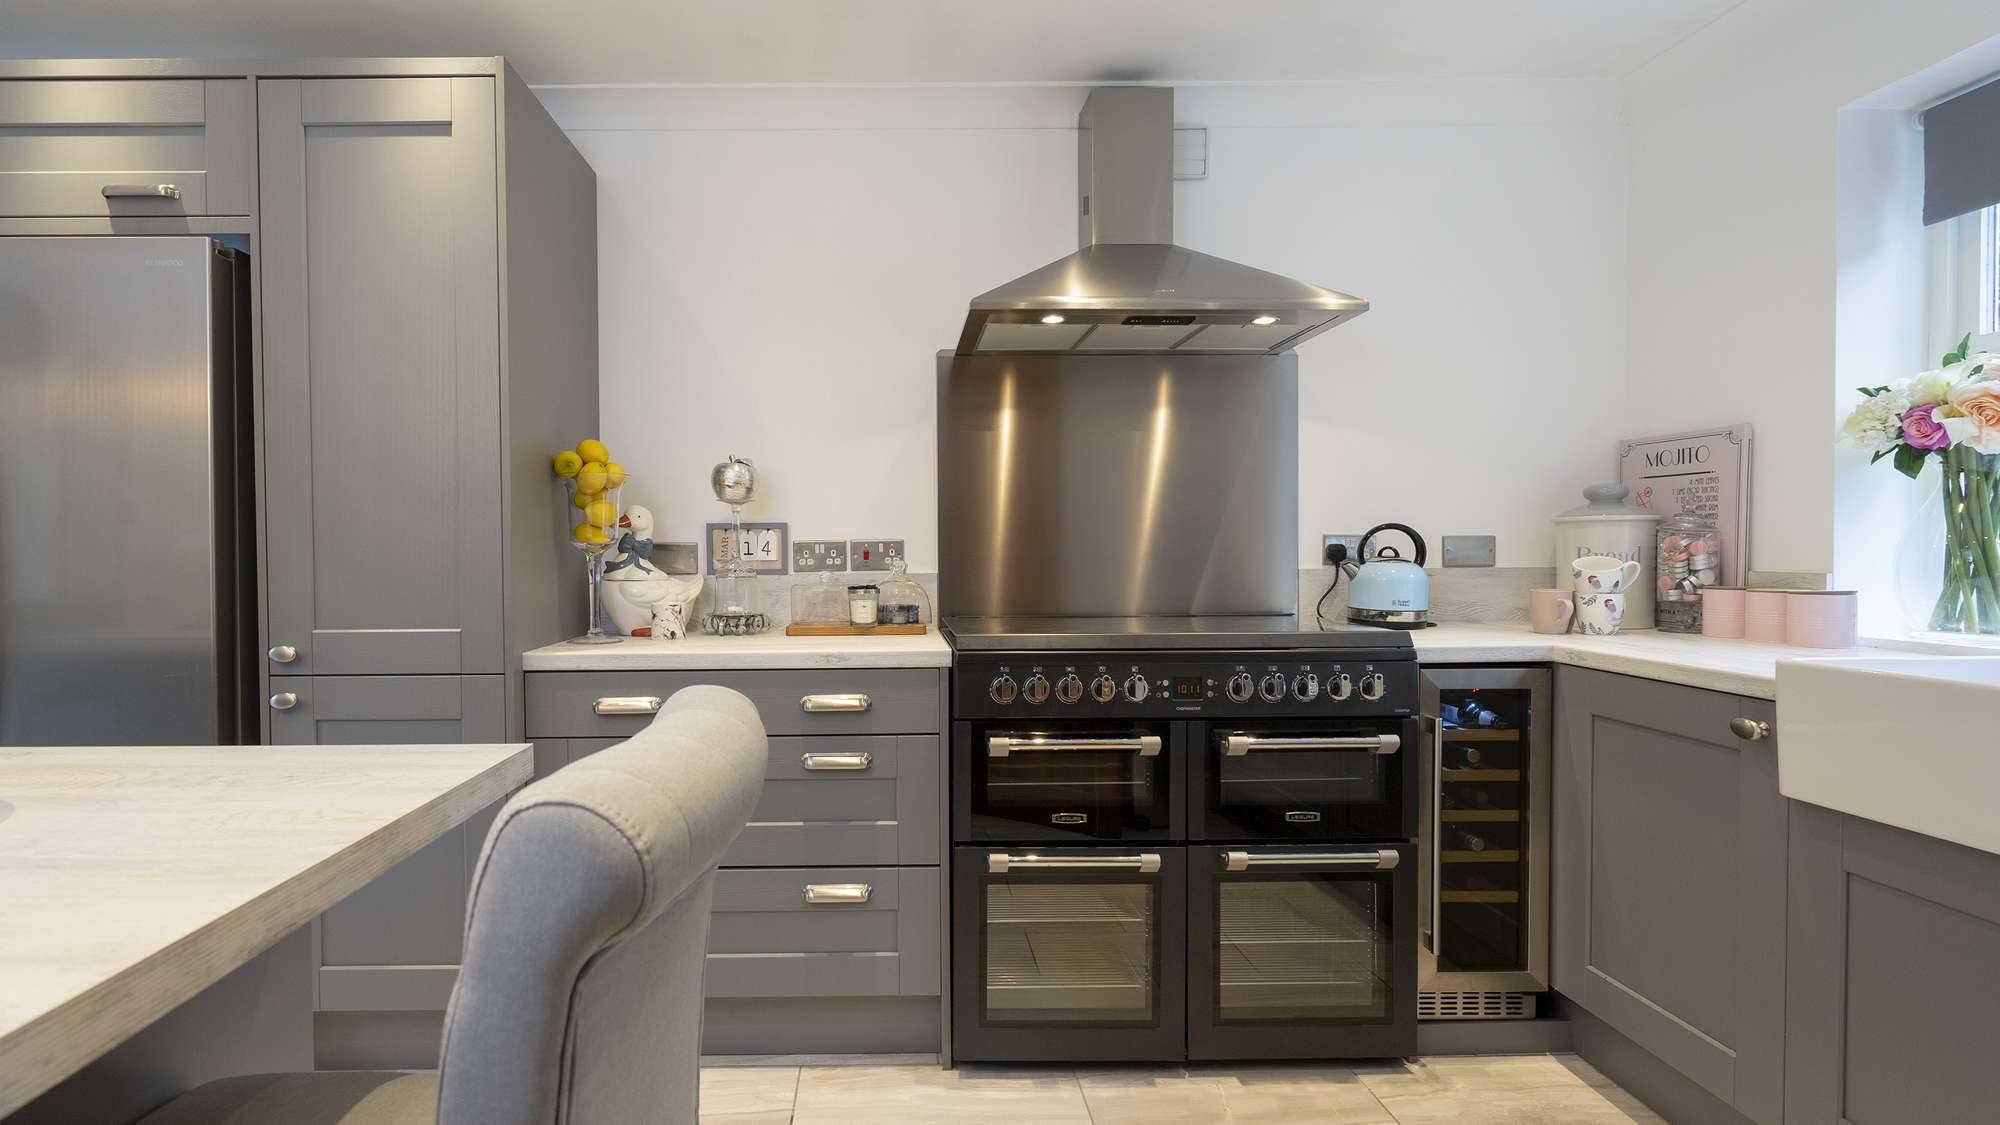 Close up of the large range cooker and stainless extractor fan.